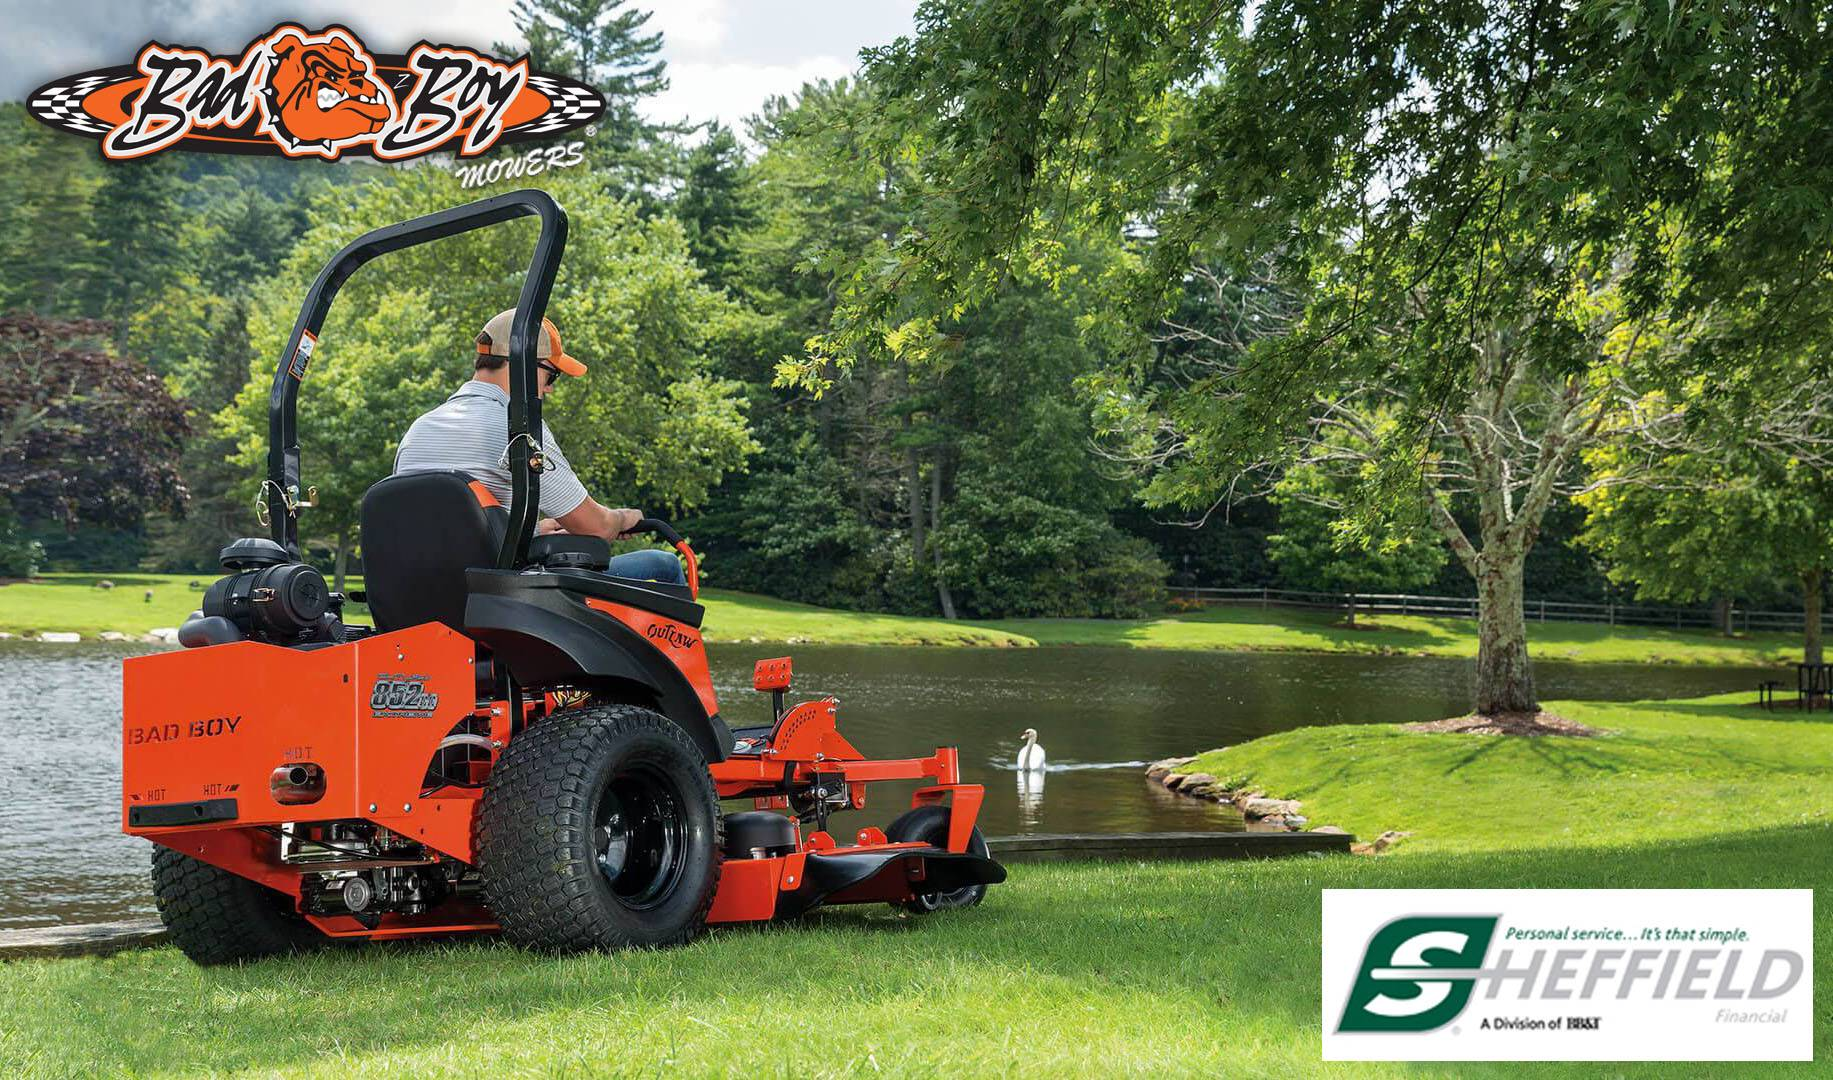 Bad Boy Mowers - Mow Now, Pay Later Special Offers